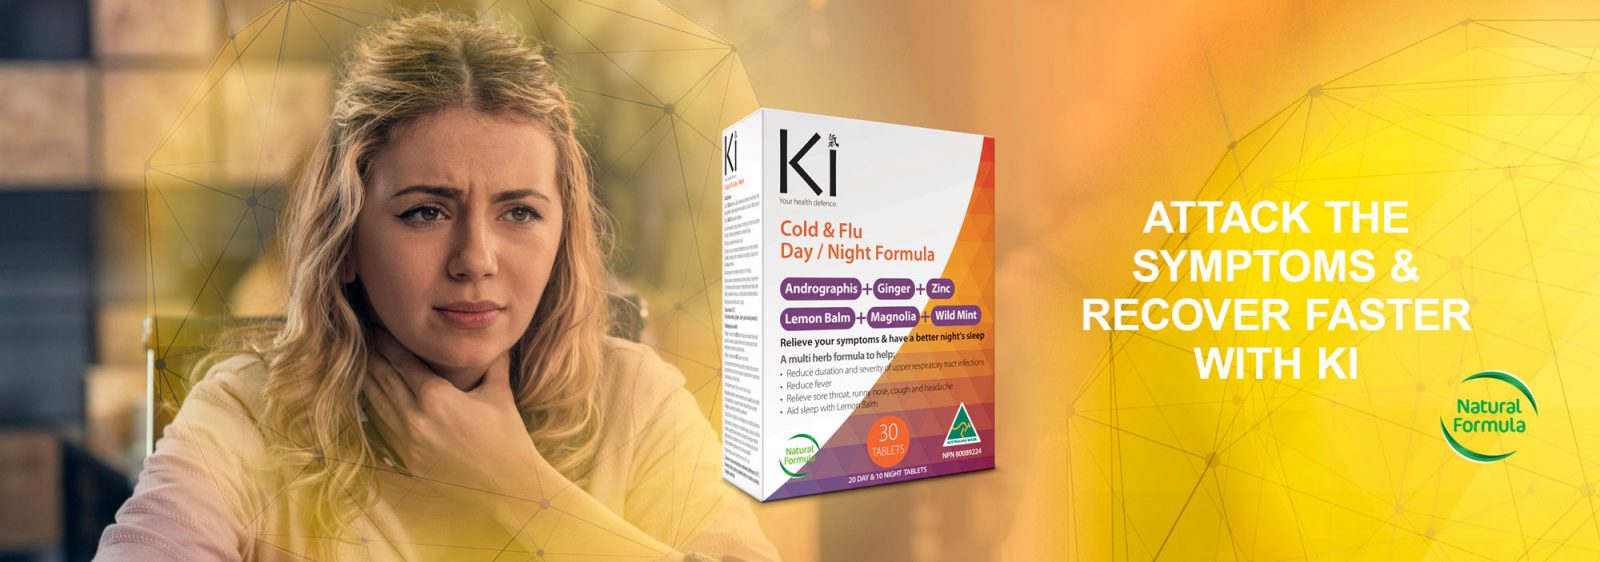 Ki Cold and flu - Attack the Symptoms